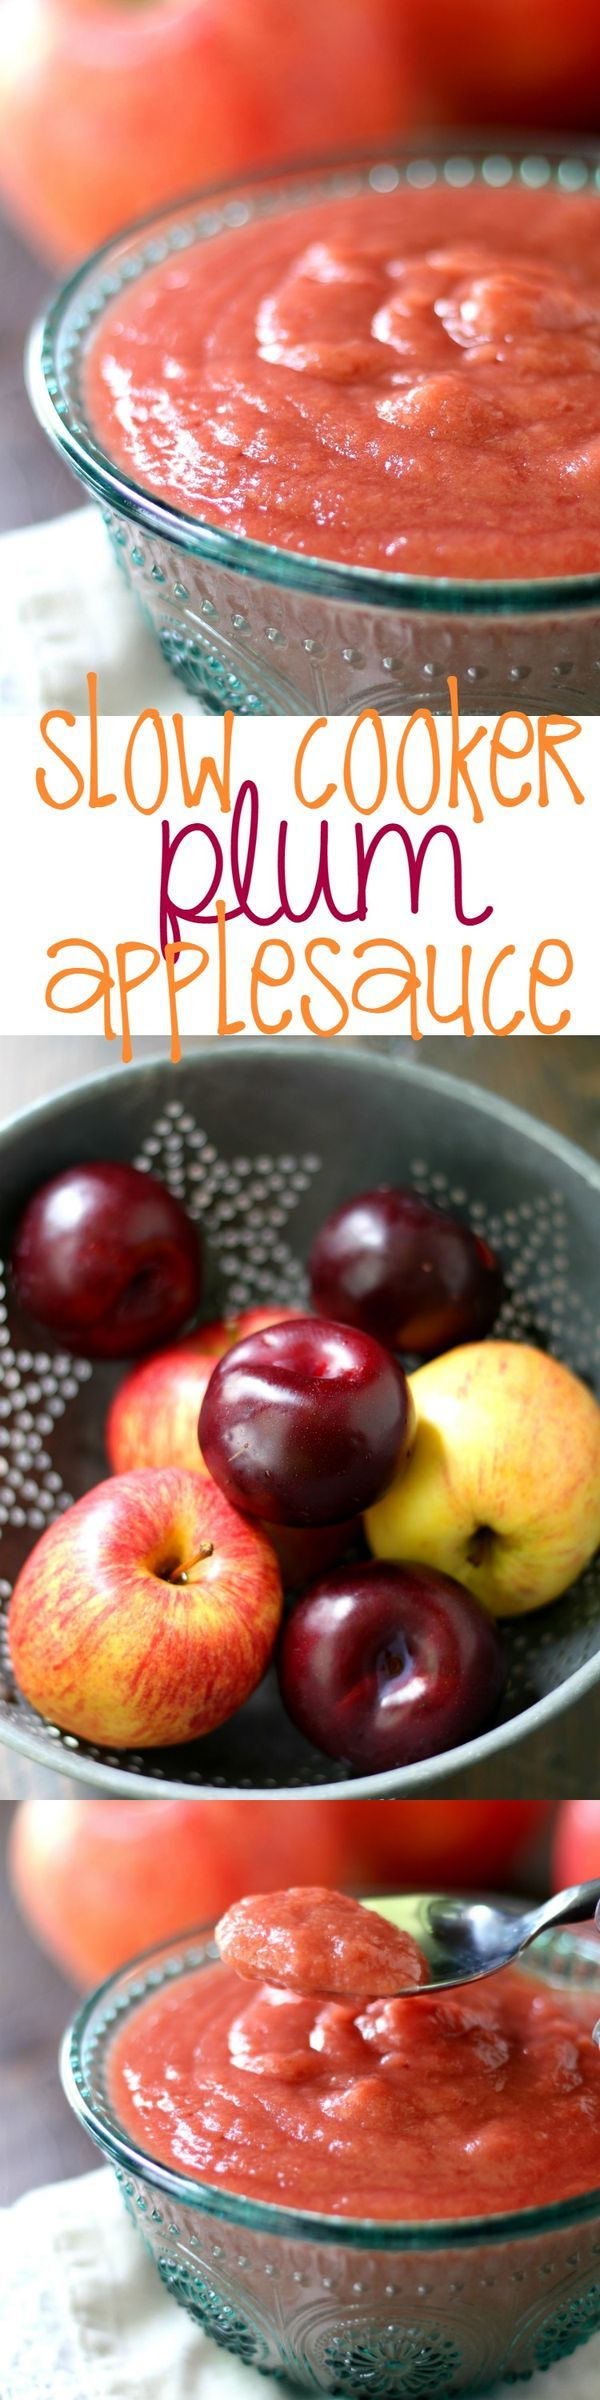 1000+ ideas about Plum Sauce on Pinterest | Sauces, Plum Recipes and ...